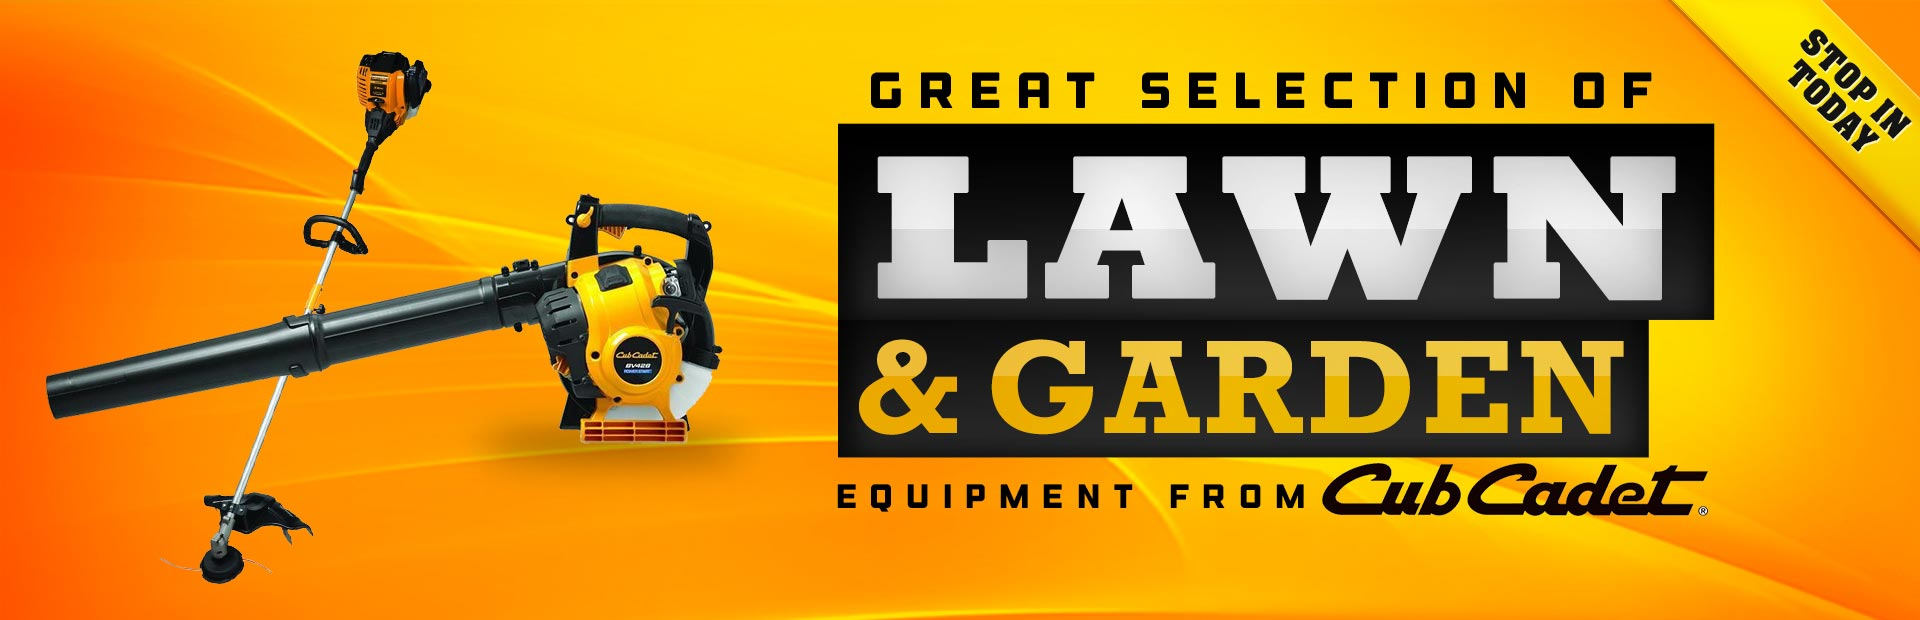 Click here to view lawn and garden equipment from Cub Cadet!